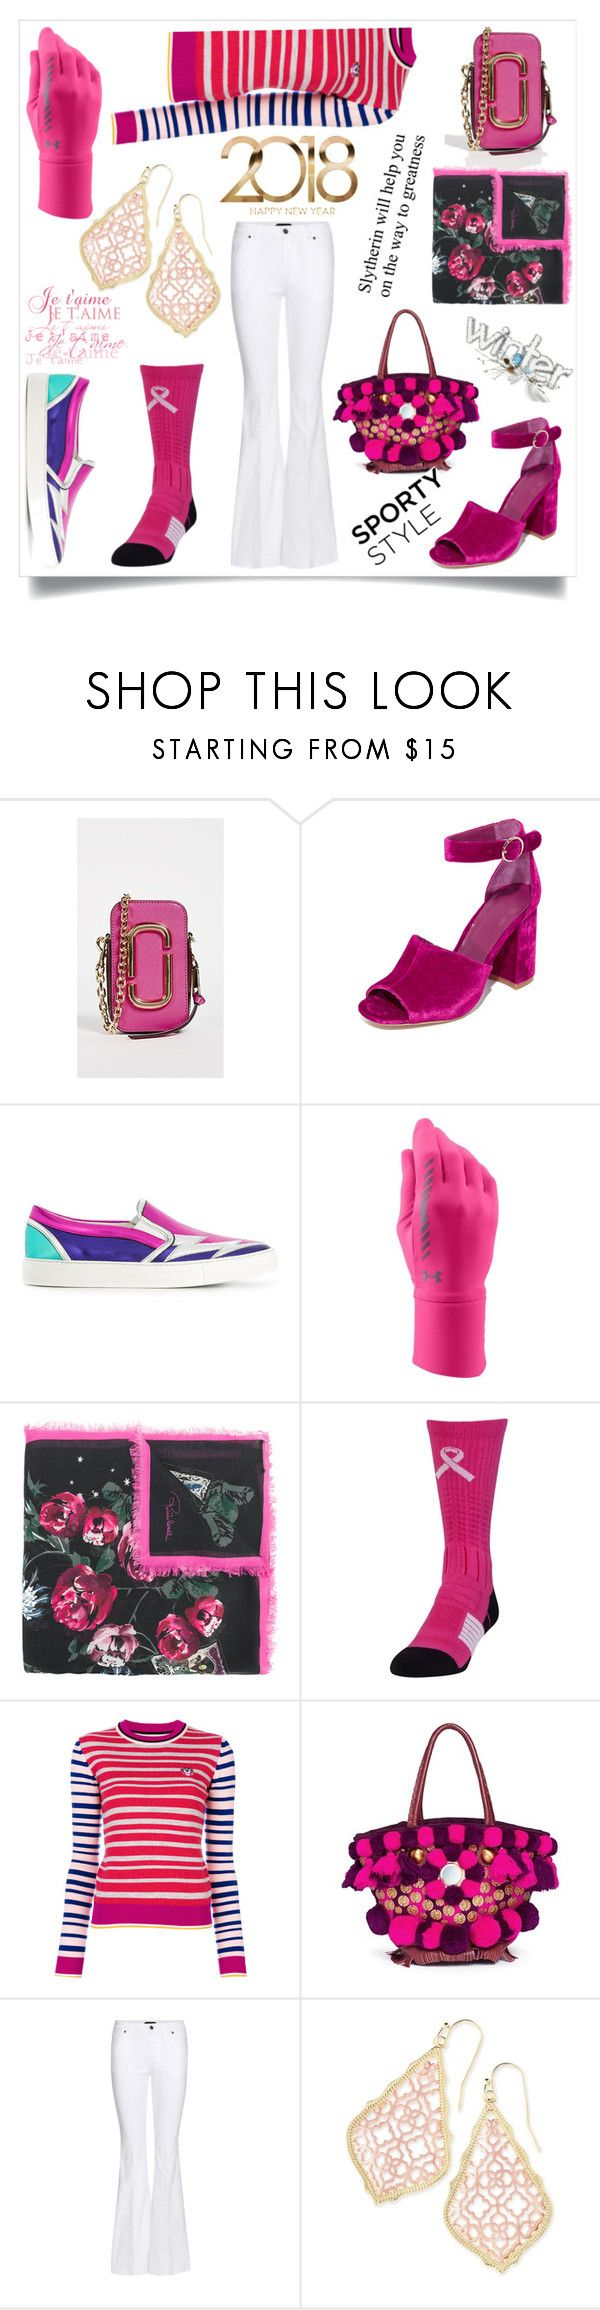 """""""Glow up your style"""" by emmamegan-5678 ❤ liked on Polyvore featuring Marc Jacobs, Joie, Dsquared2, Under Armour, Roberto Cavalli, Kenzo, Figue, Tom Ford, Kendra Scott and modern"""